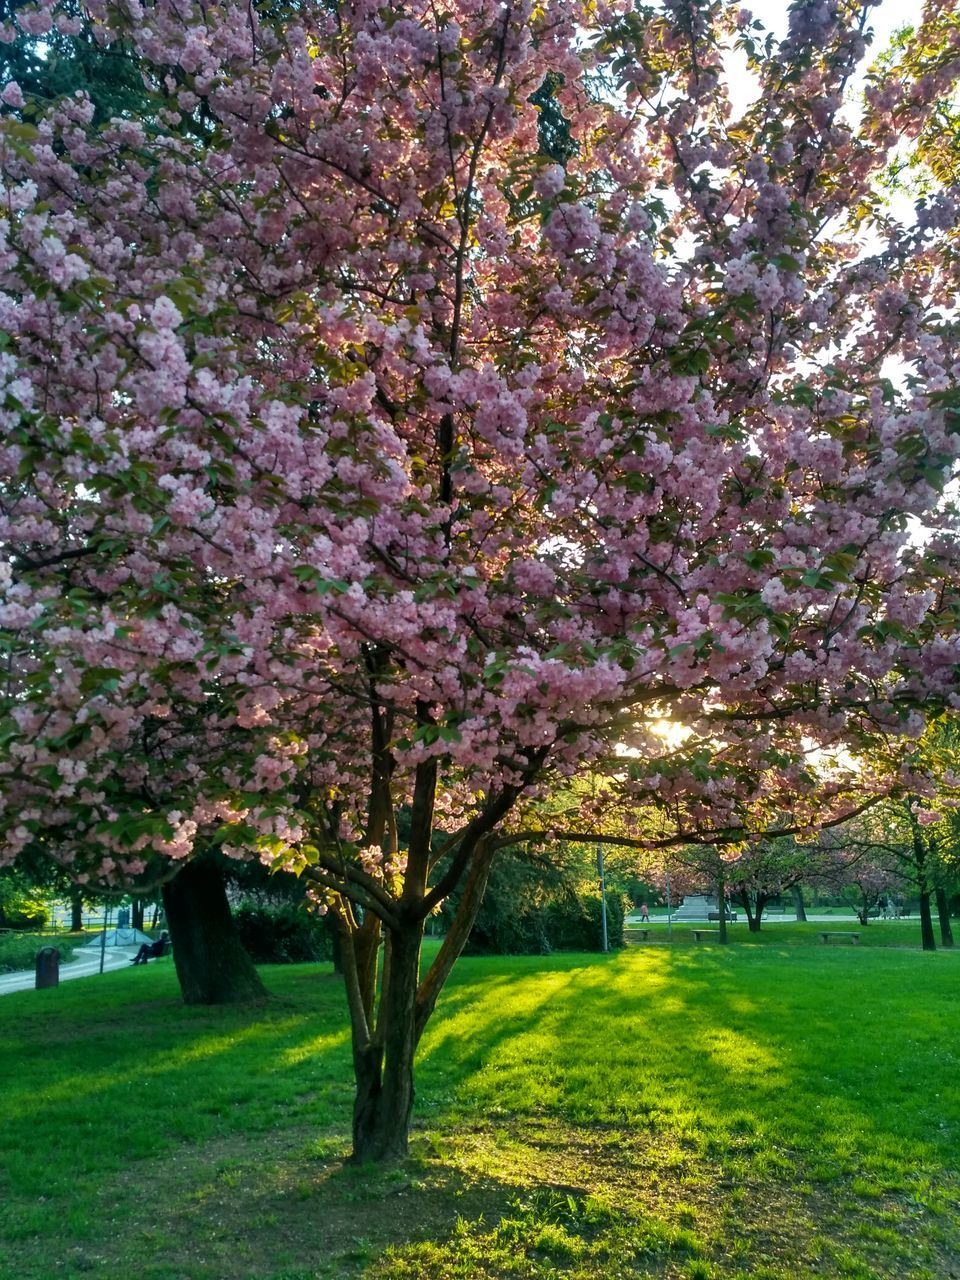 tree, blossom, flower, growth, nature, beauty in nature, springtime, cherry tree, grass, orchard, branch, no people, freshness, tranquility, pink color, fragility, outdoors, day, park - man made space, scenics